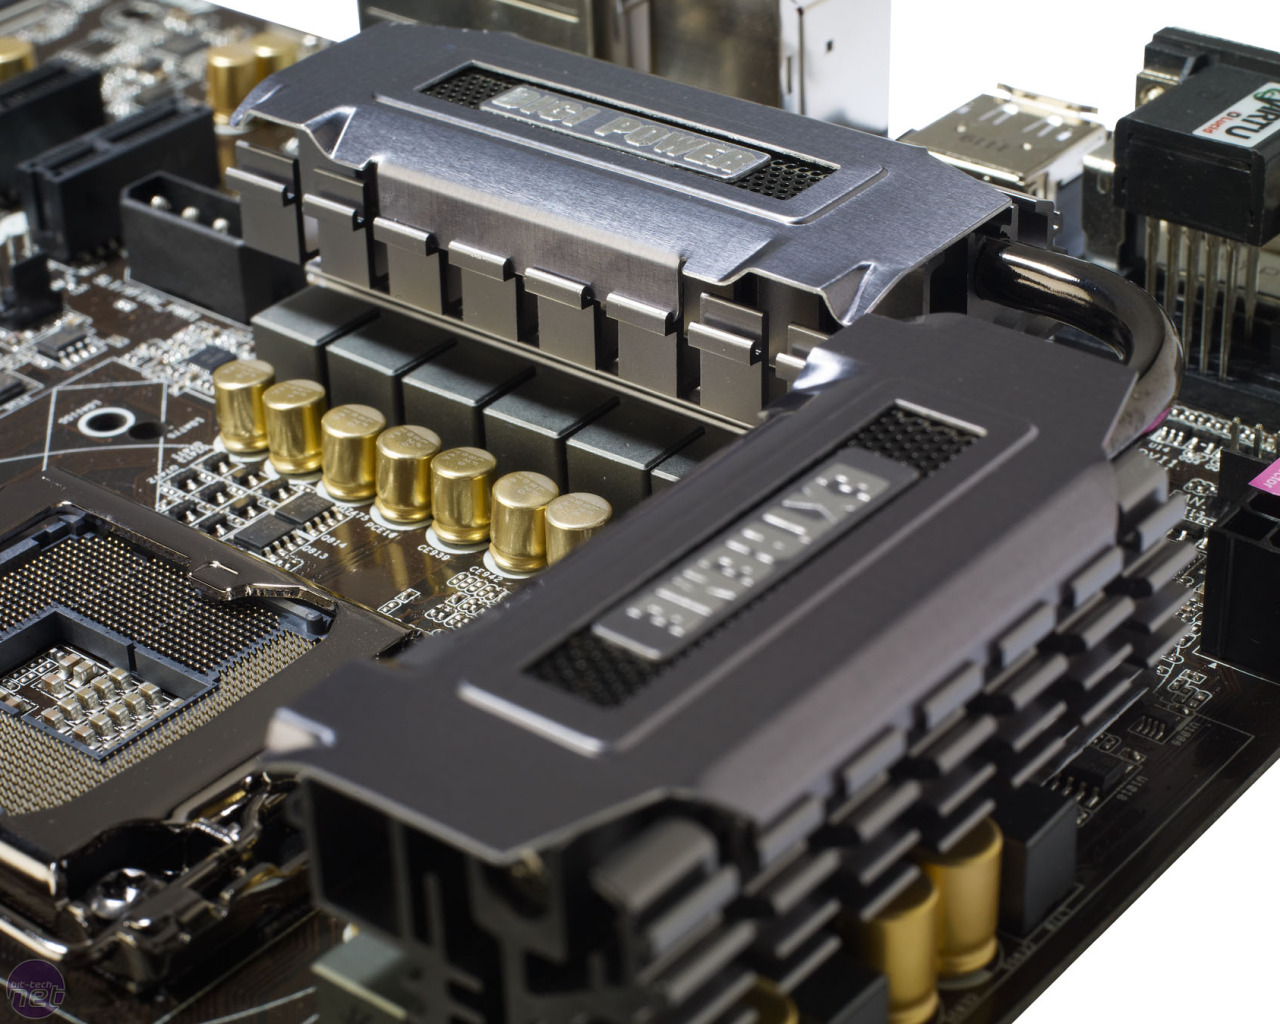 """Asrock Z68 Extreme4 GEN3 Angle View Of """"V8"""" VRM/MOSFET Heatsink+Heapipe Combo, 8+4 Phase PWM, Gold Caps, Hi Density Chokes and killer Power Delicery (CLEAN) in general!"""